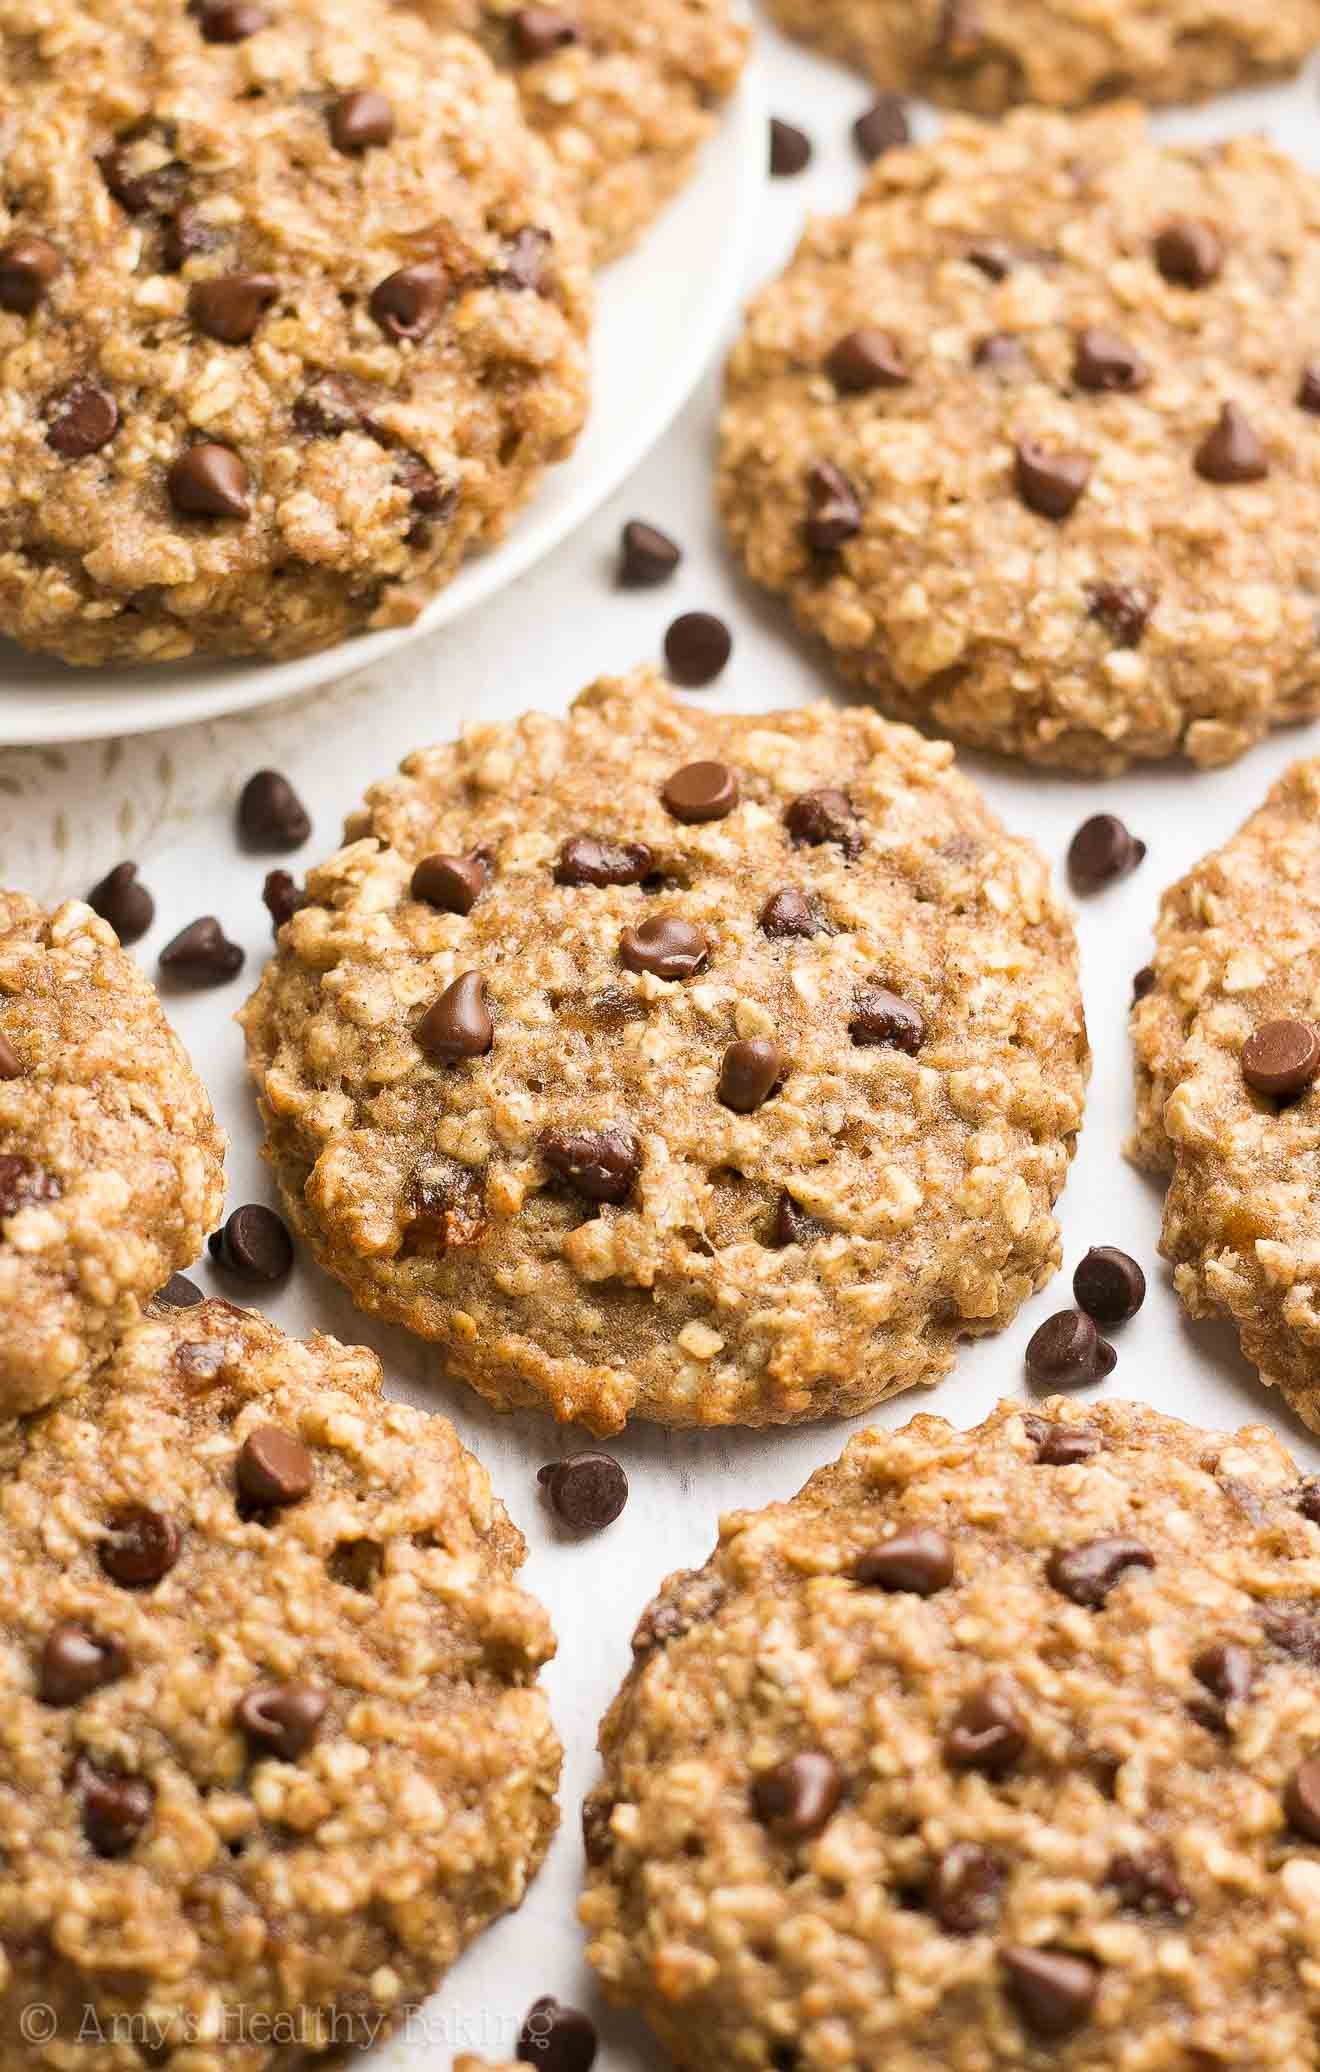 Healthy Caramel Chocolate Chip Oatmeal Cookies | Amy's Healthy Baking